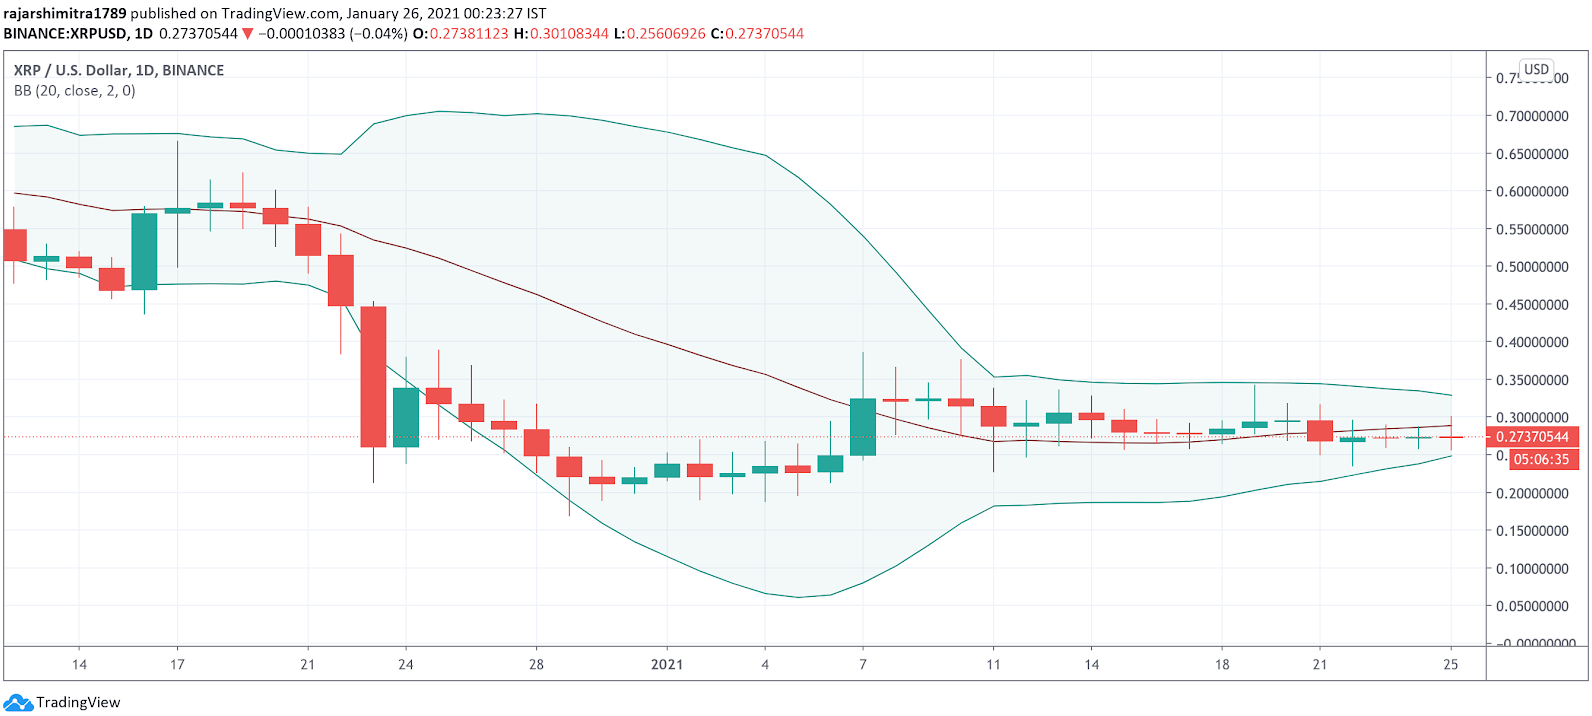 xrp/usd bollinger band chart 012621